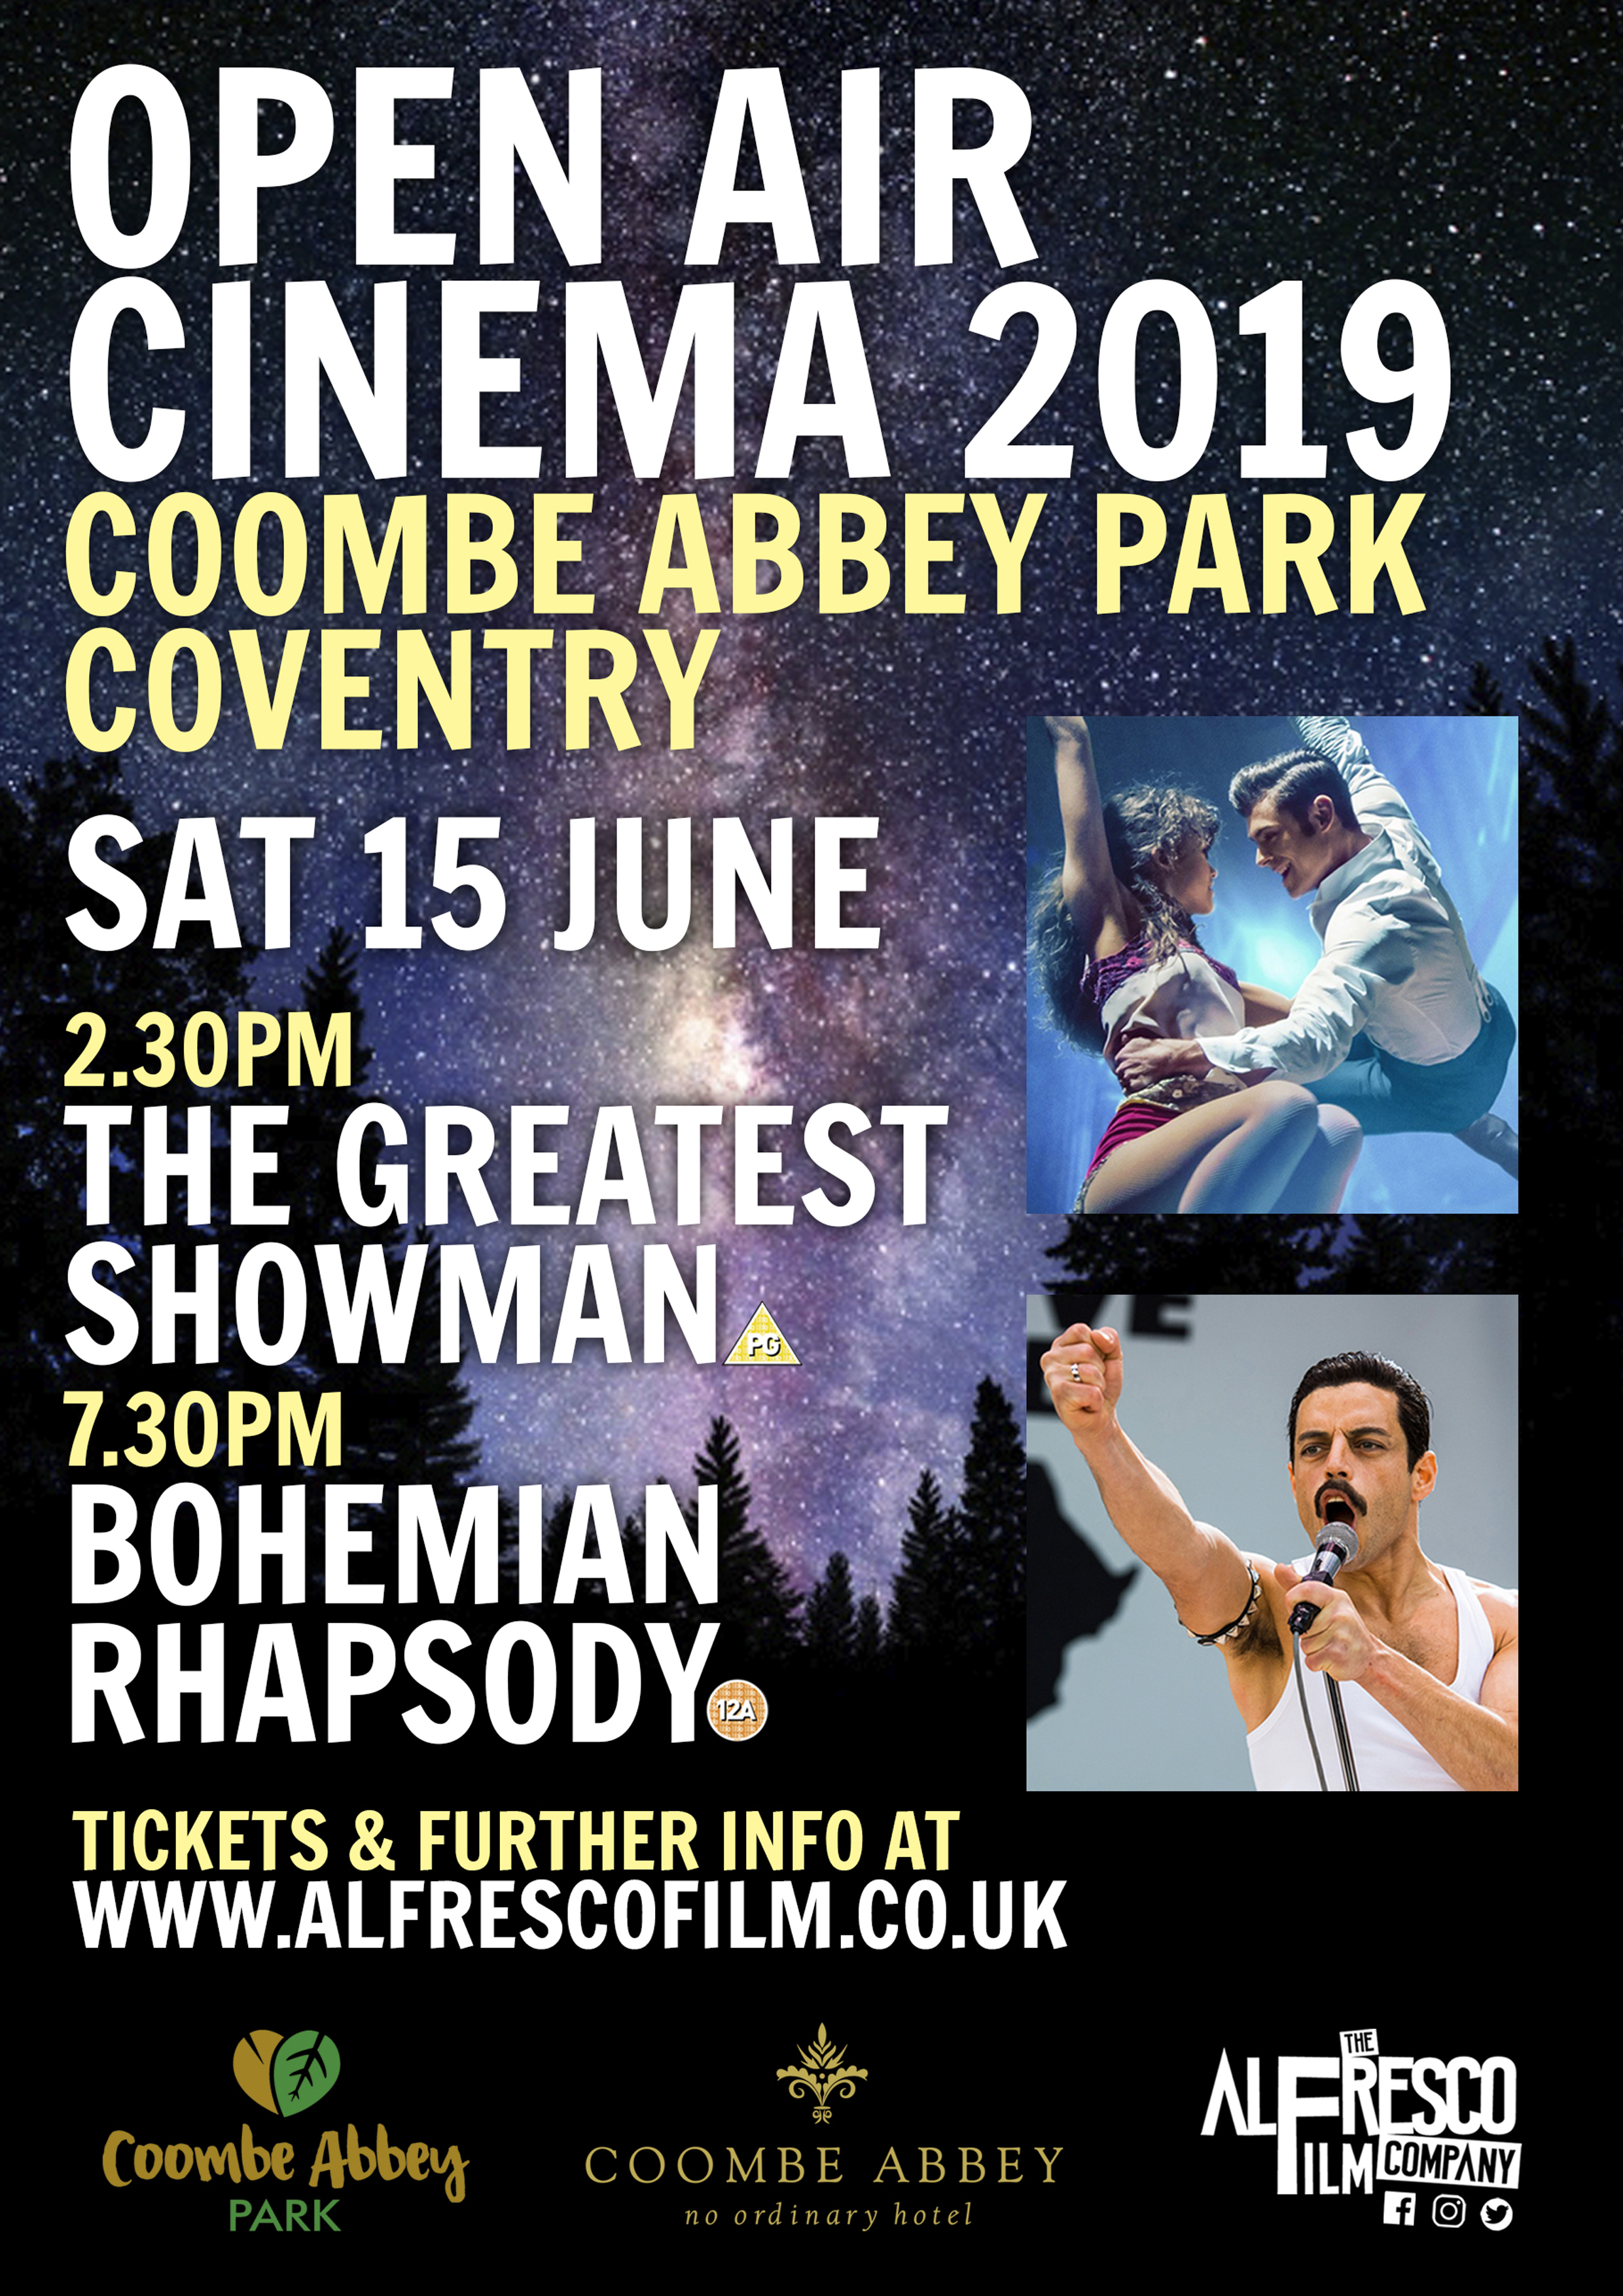 Open air cinema at Coombe Abbey Park